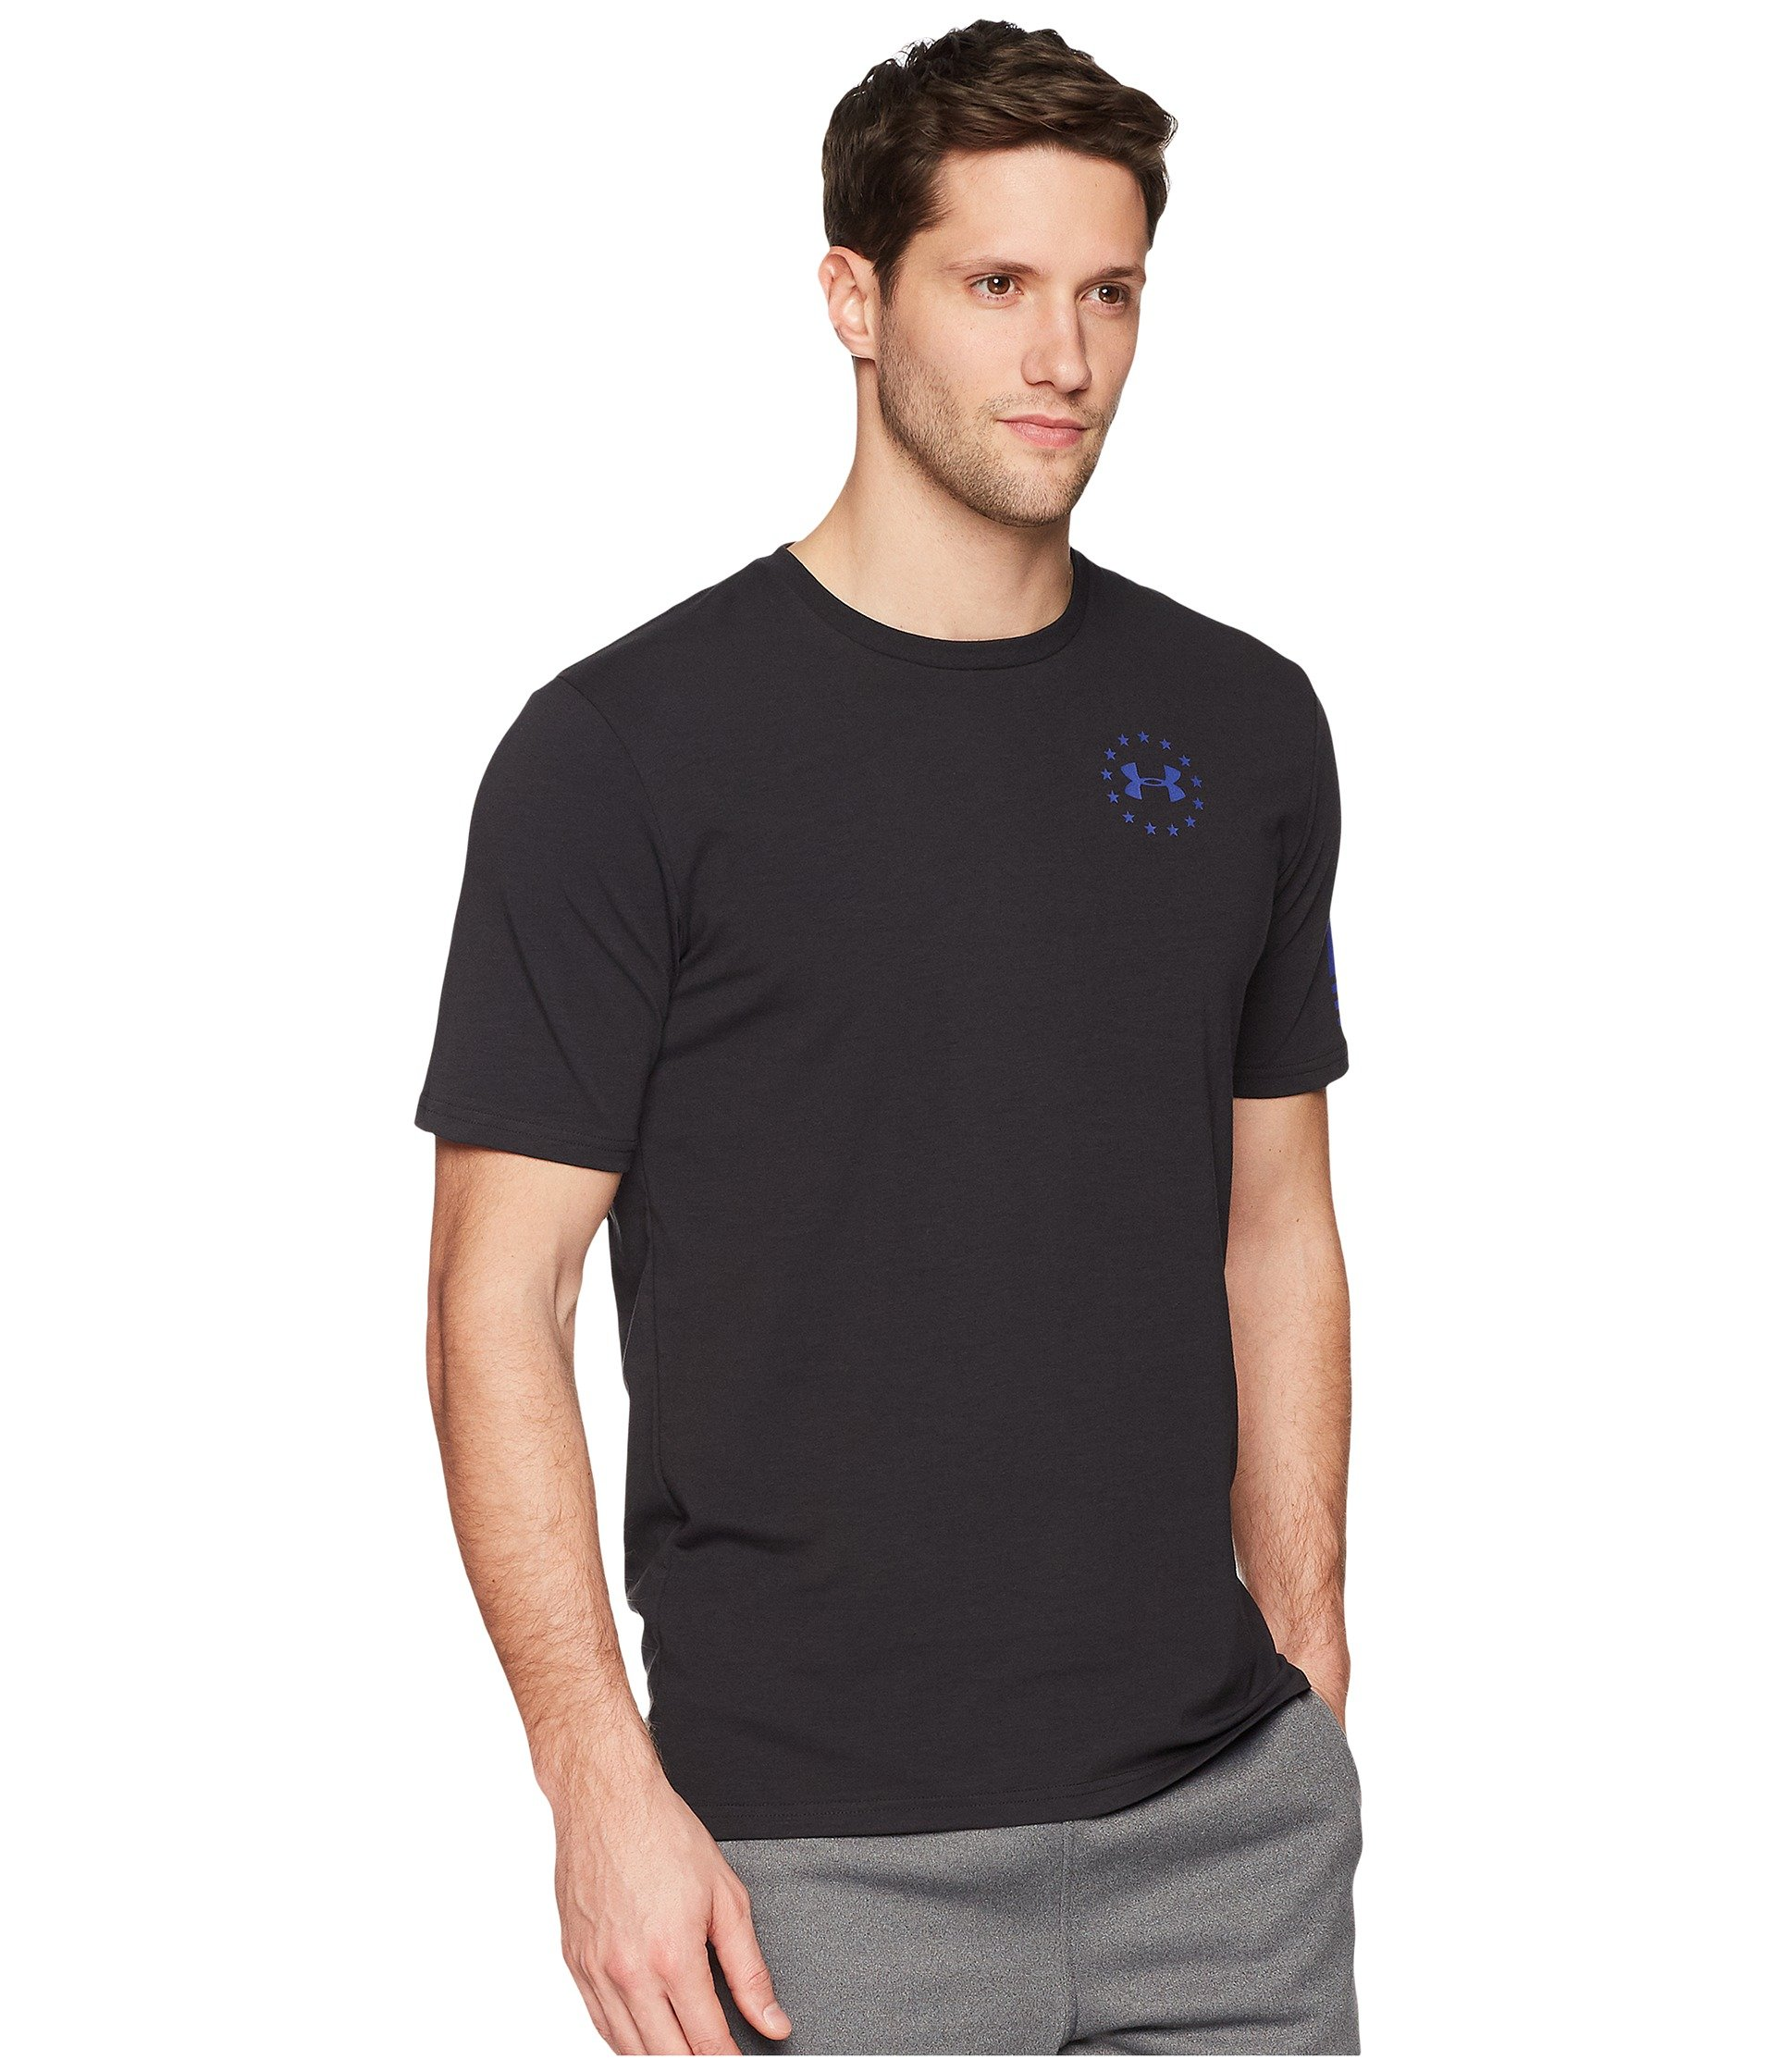 royal Tee Black graphite Under Ua Express Armour Freedom wOxIxY0